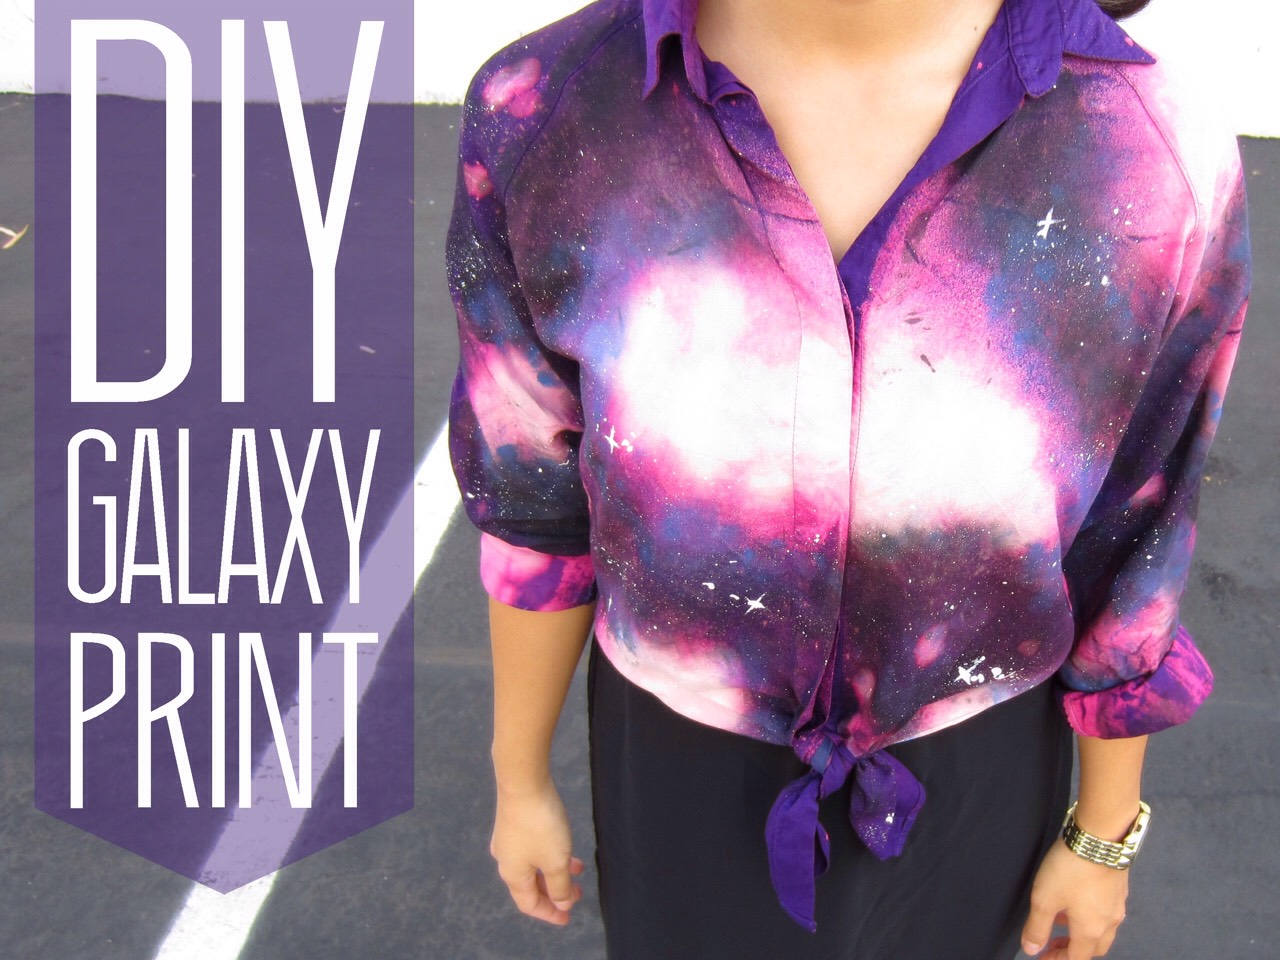 A lot of galaxy stuff doesn't work but not all but honestly it won't look like it does in the picture